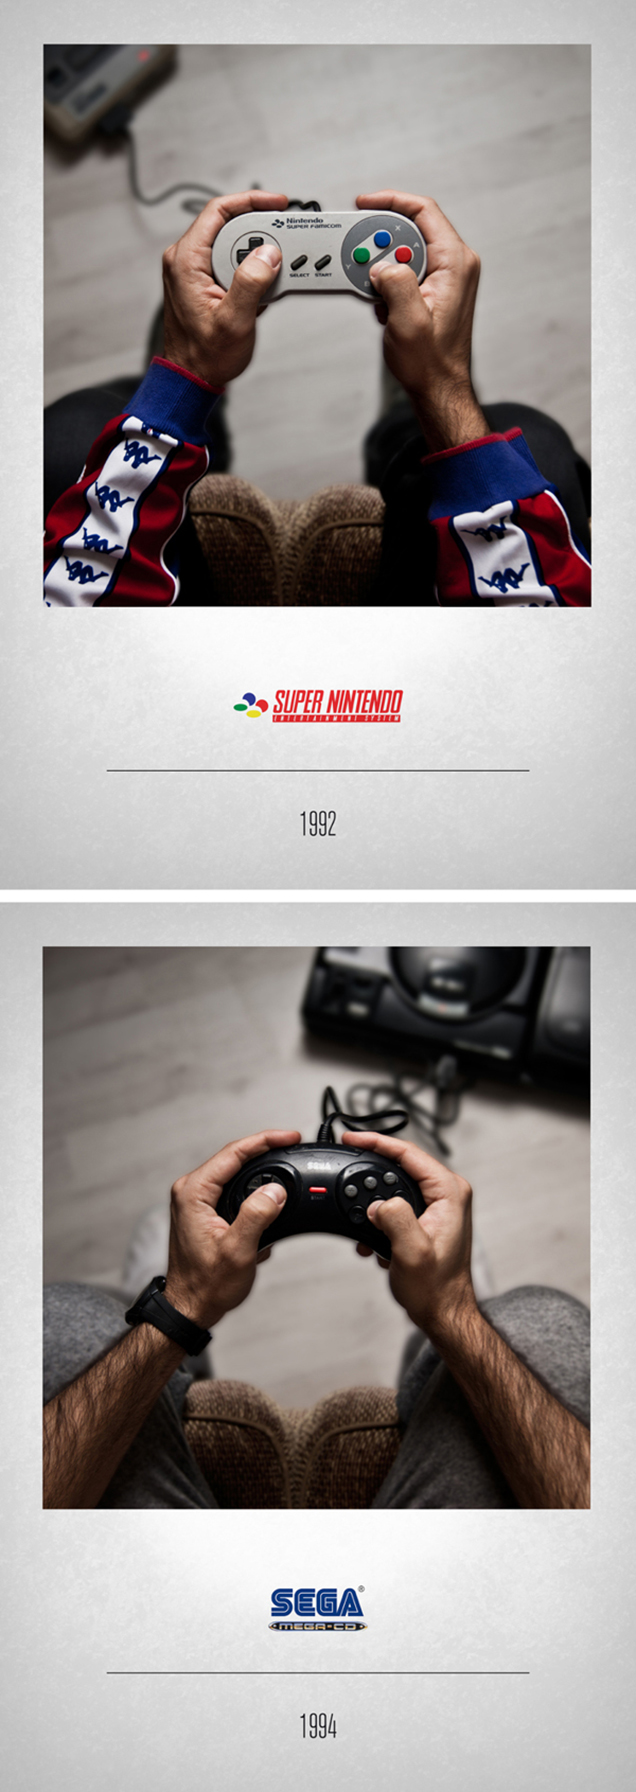 game-consoles-1992-1994.jpg